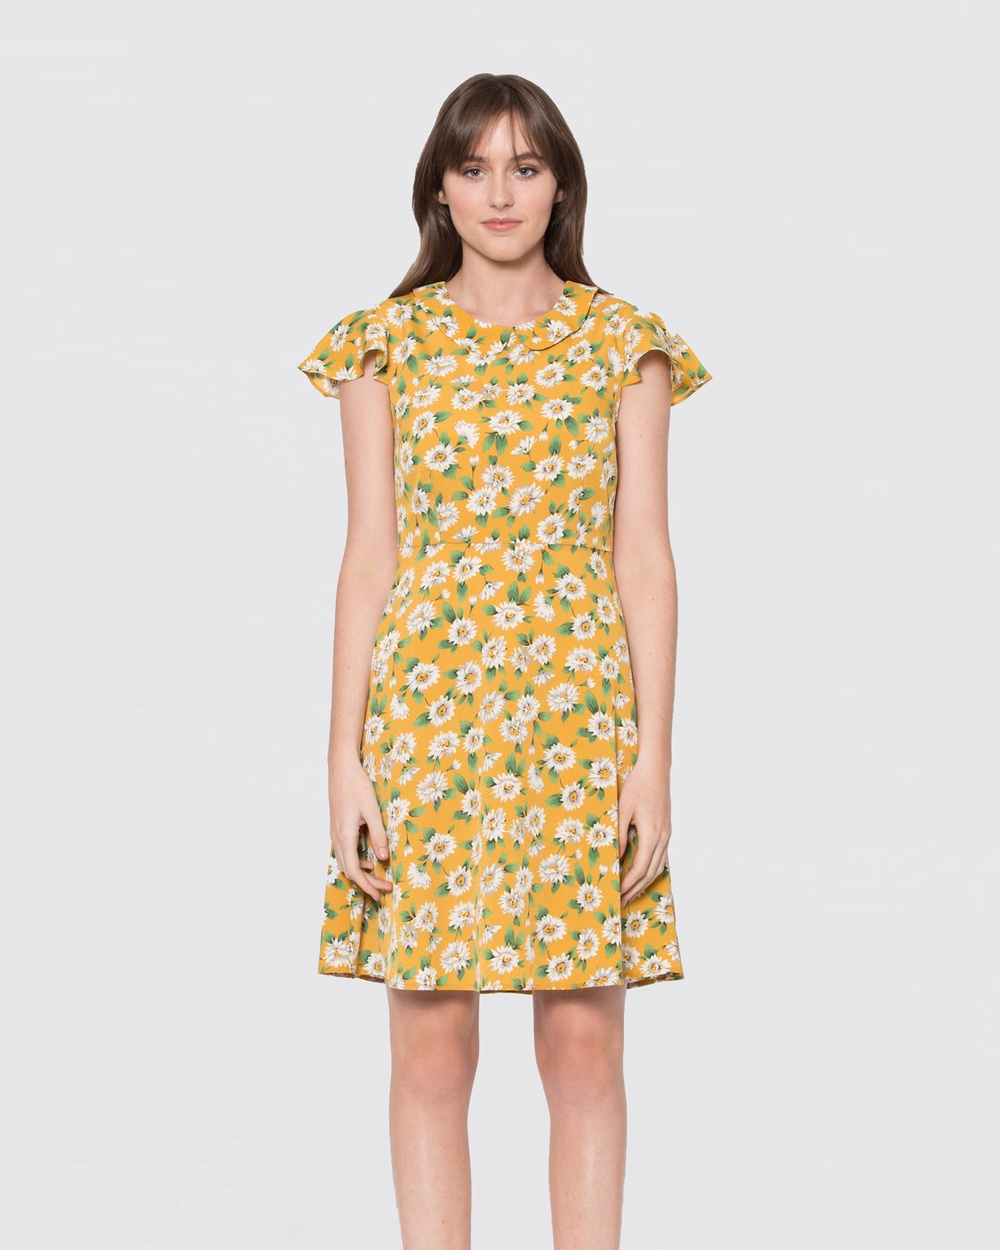 Dangerfield Yellow Miss Daisy Dress